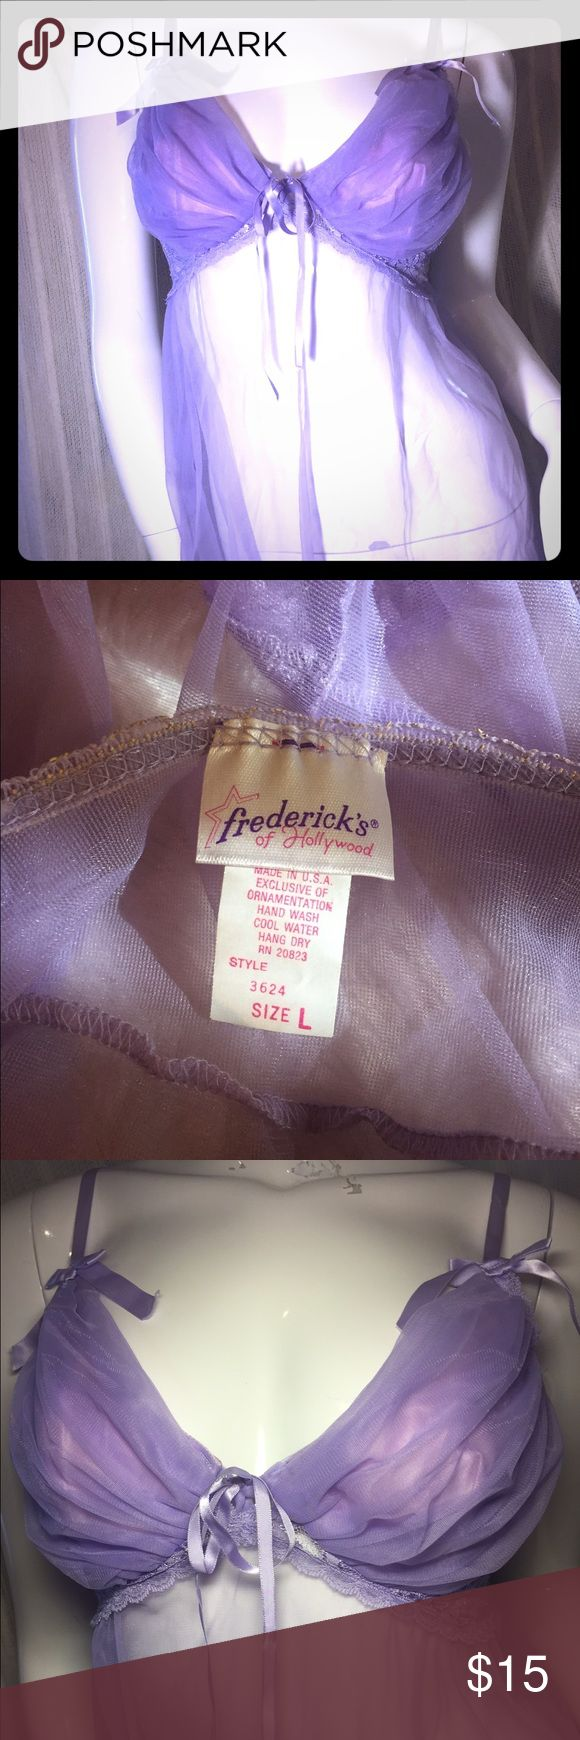 FREDRICK's of Hollywood Babydoll with lined cups Gorgeous & sexy! Great fully lined bra top to support your curves. Very feminine & delicate with Satin bow detailing. Worn once & it's been sitting ever since. Thank you for looking! Fredricks of Hollywood Intimates & Sleepwear Chemises & Slips